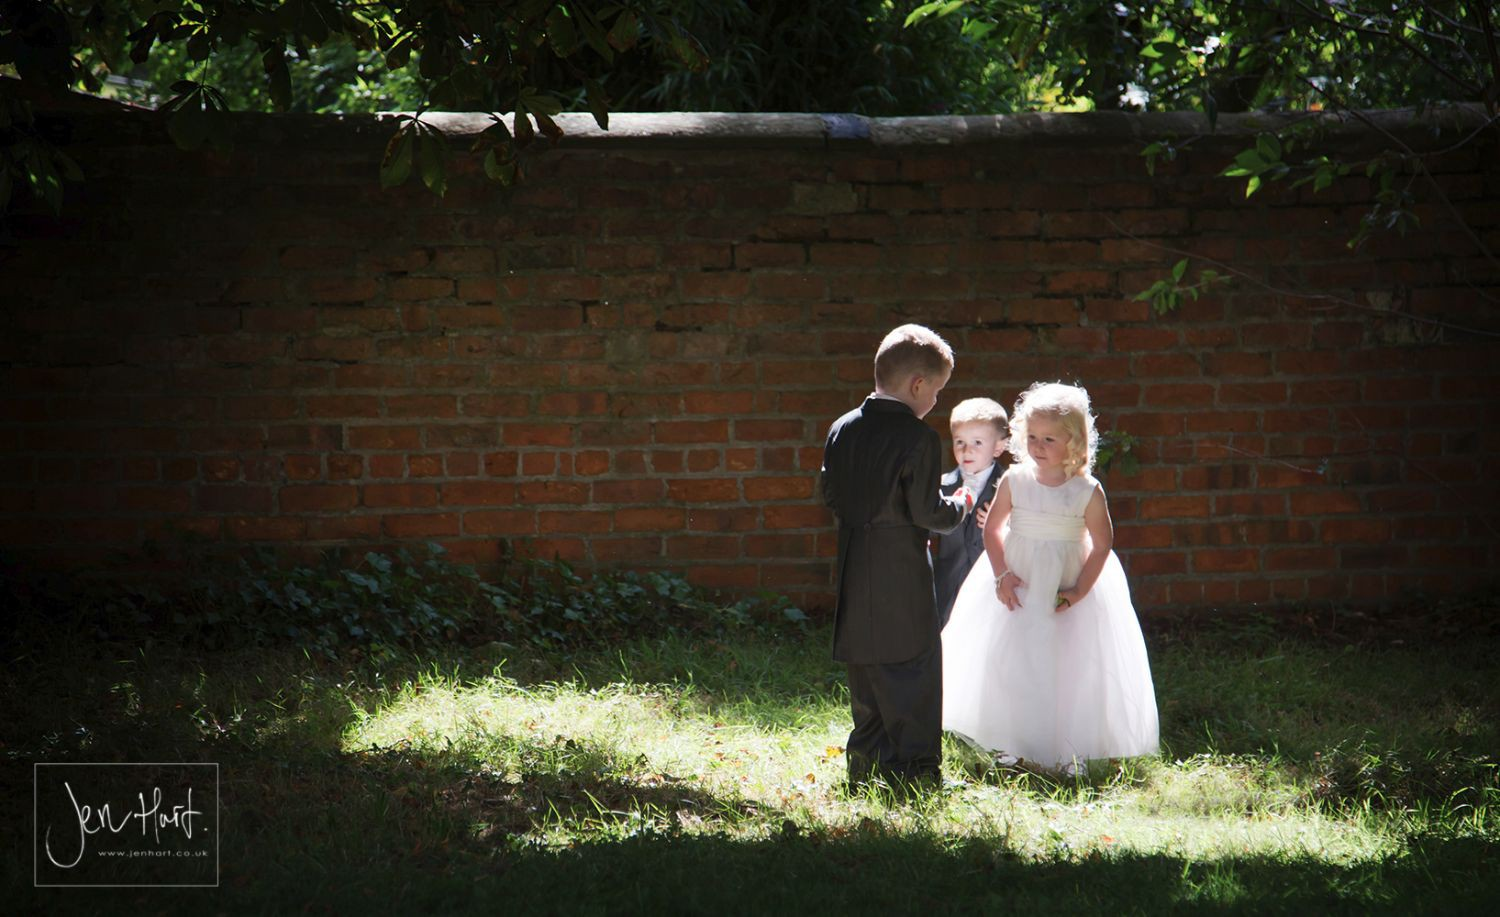 Wedding_Whinstone_View_Kath&Steve_30AUG14_039